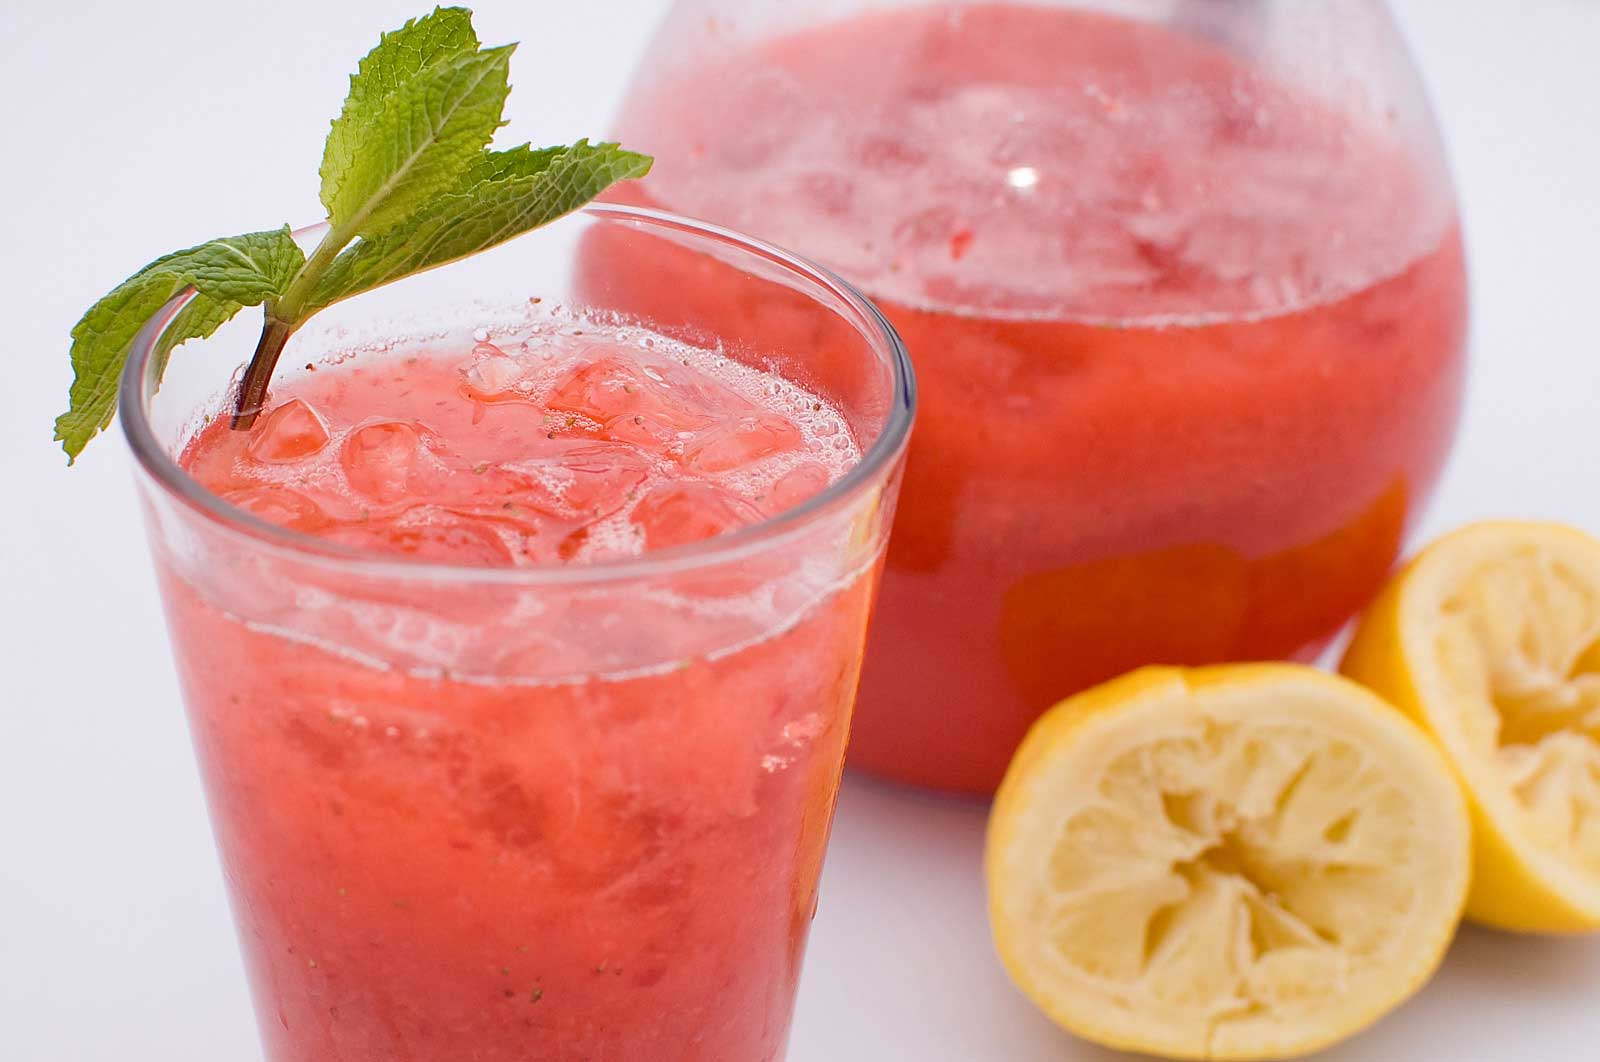 Strawberrie Lemonade